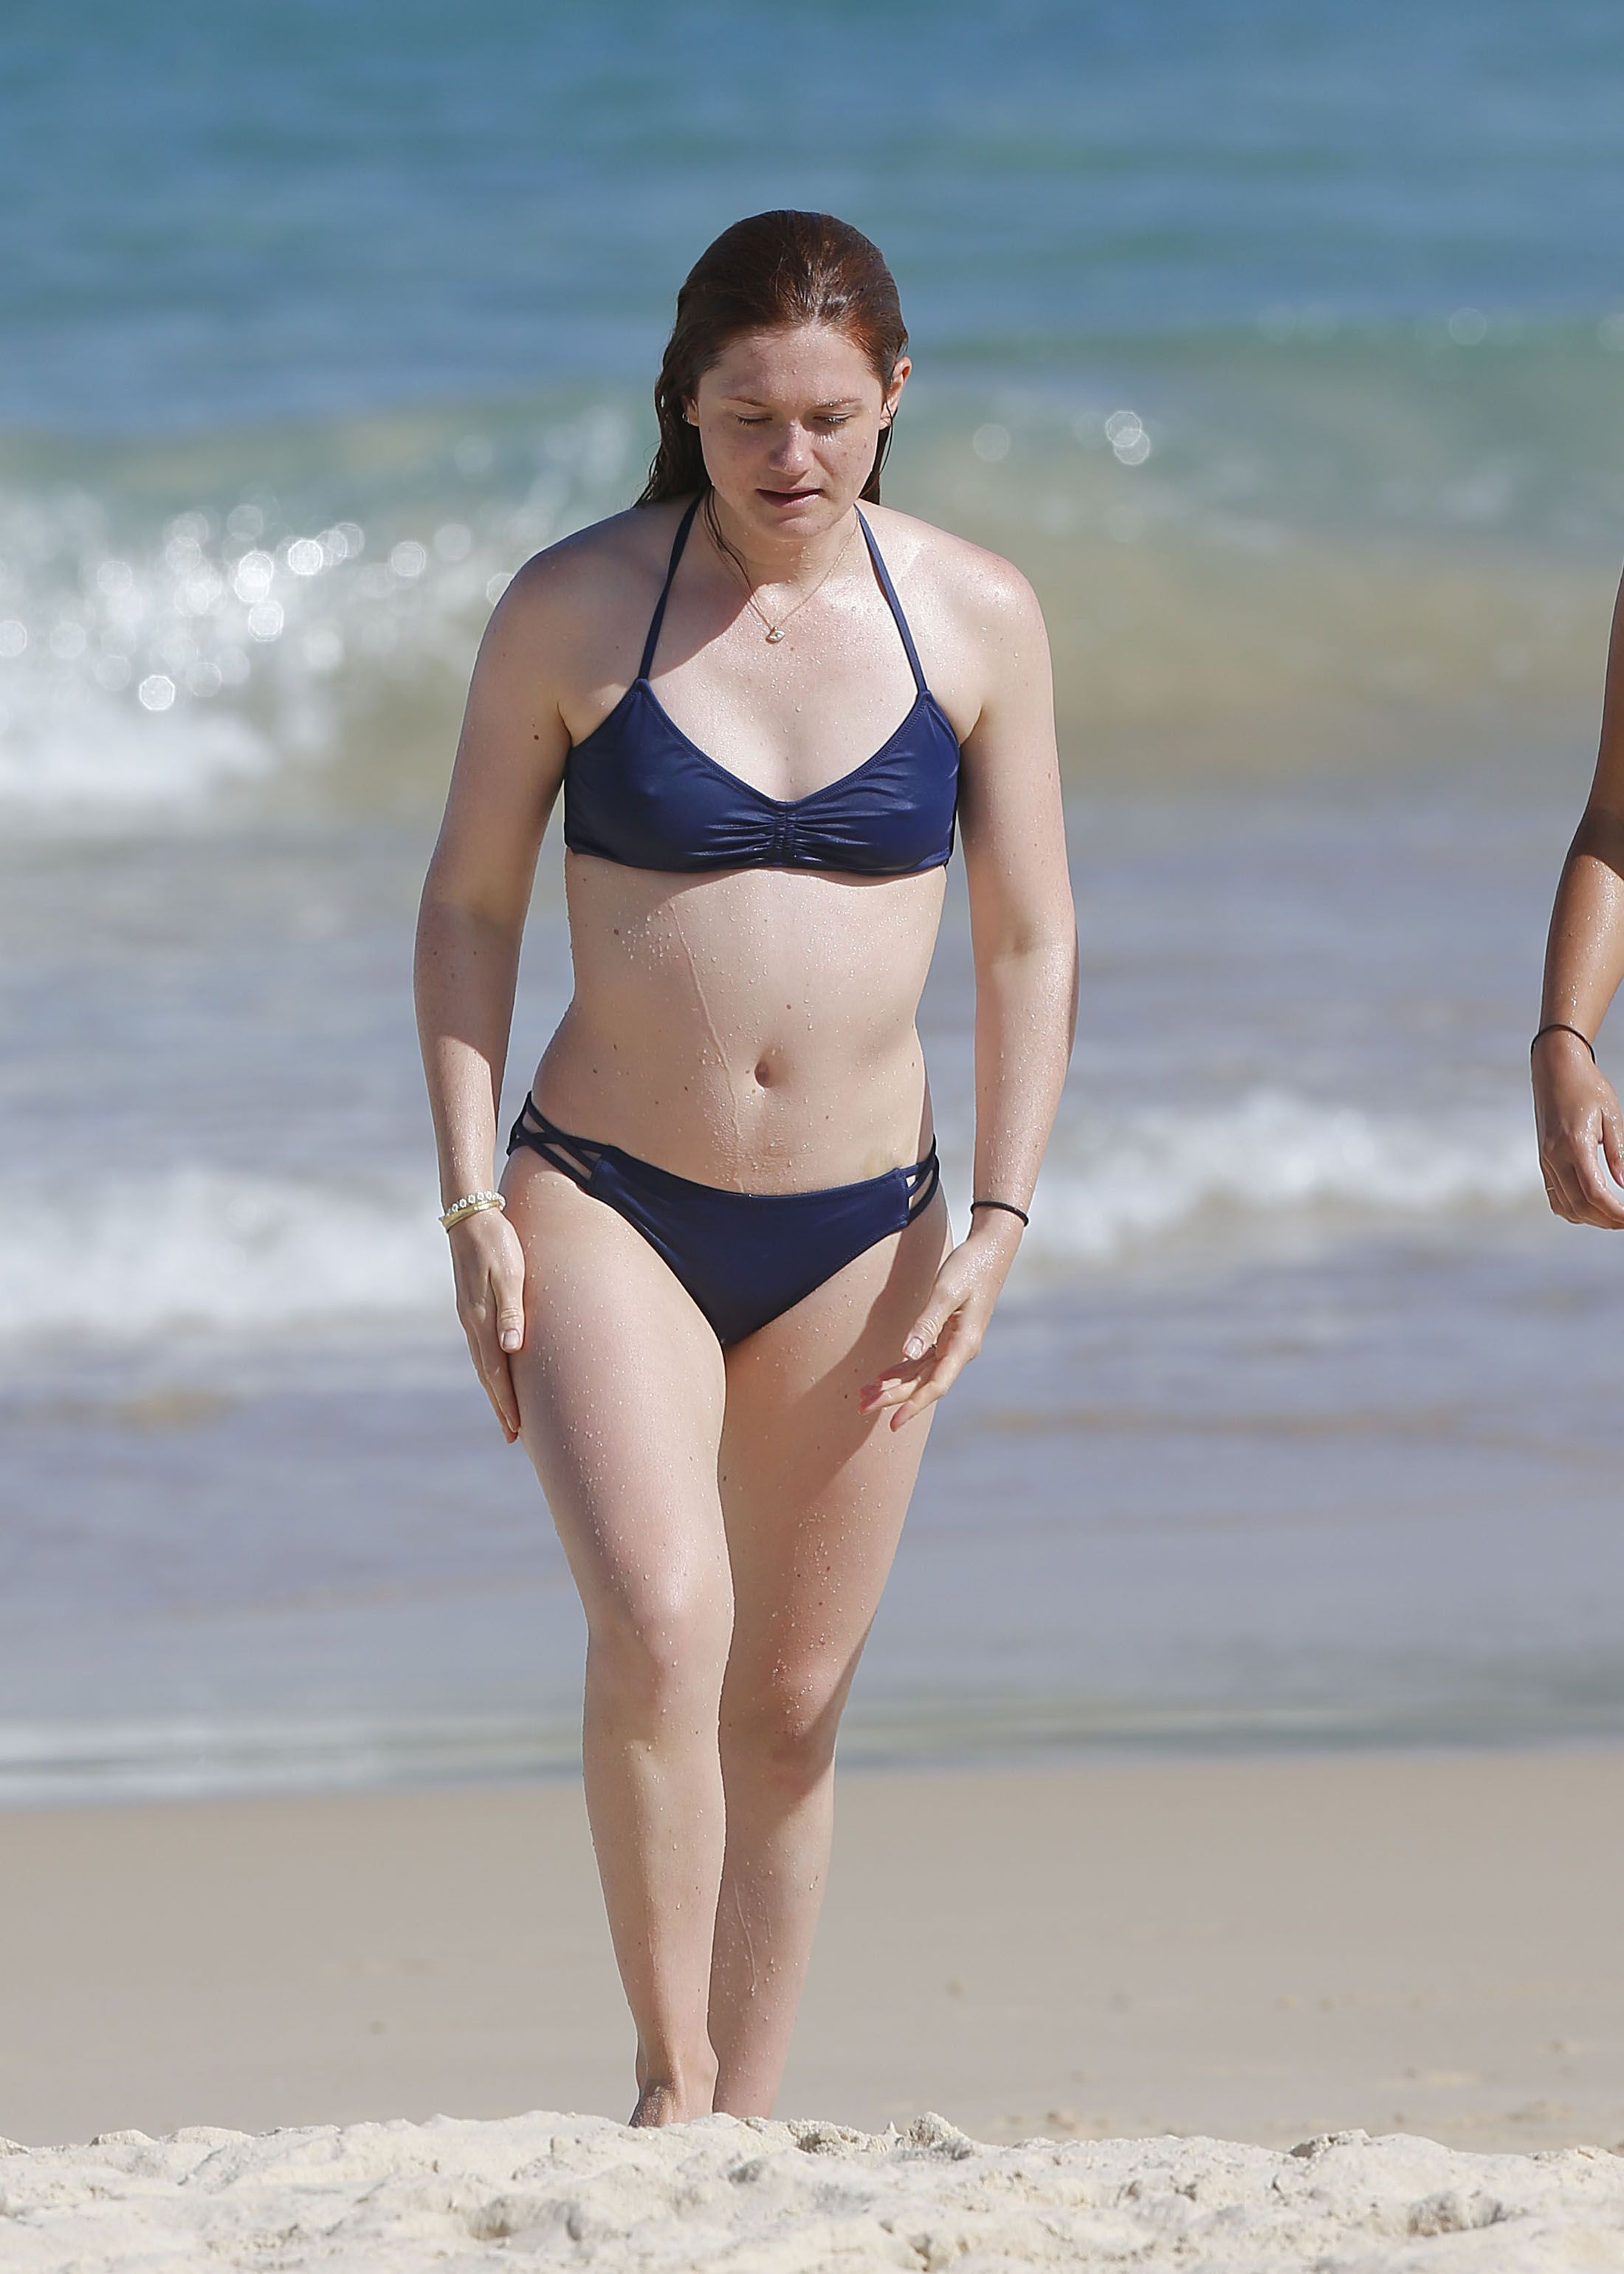 bonnie wright hot and nude videos